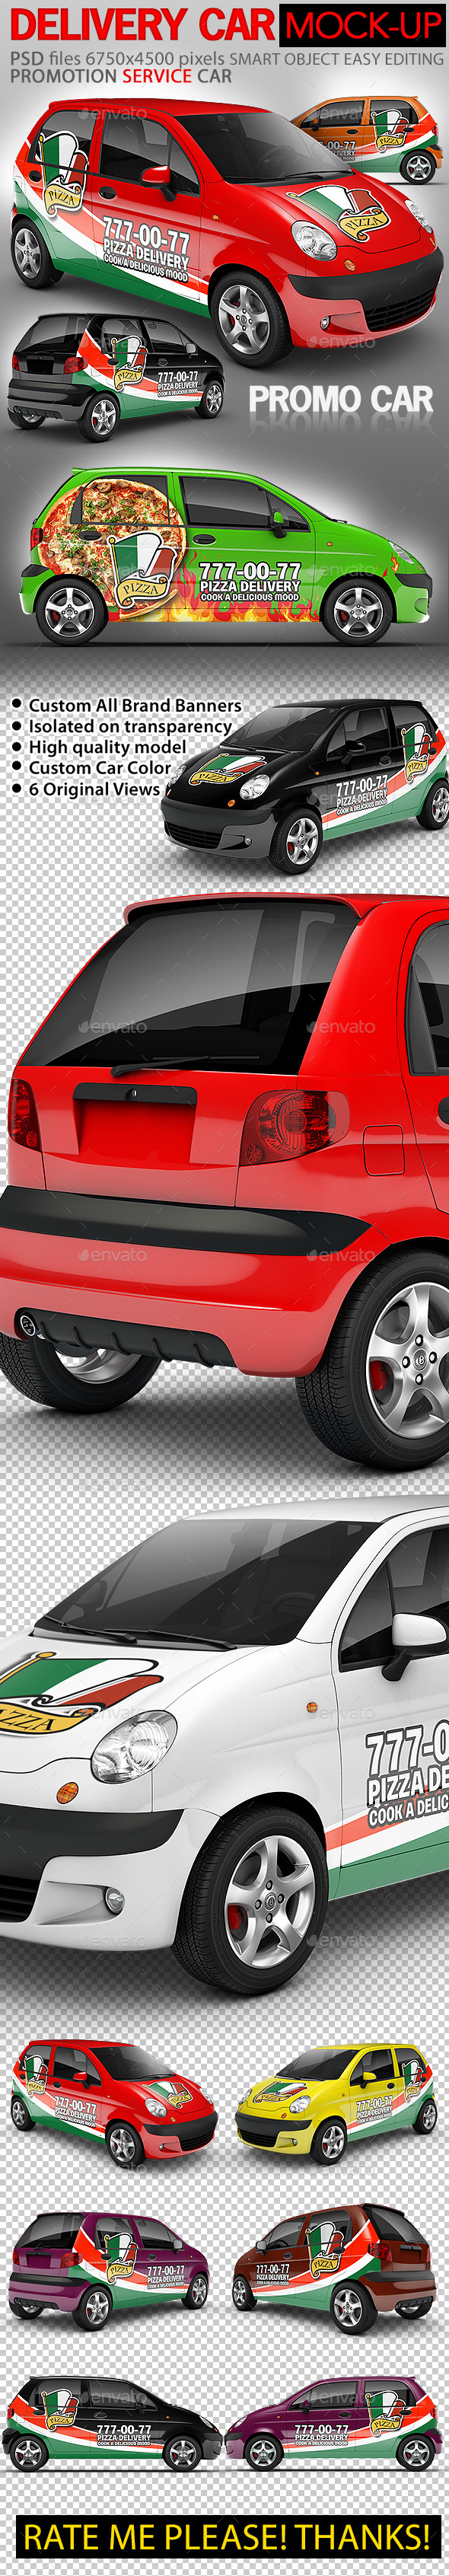 Pizza Delivery Promo Car Mock-up - Vehicle Wraps Print